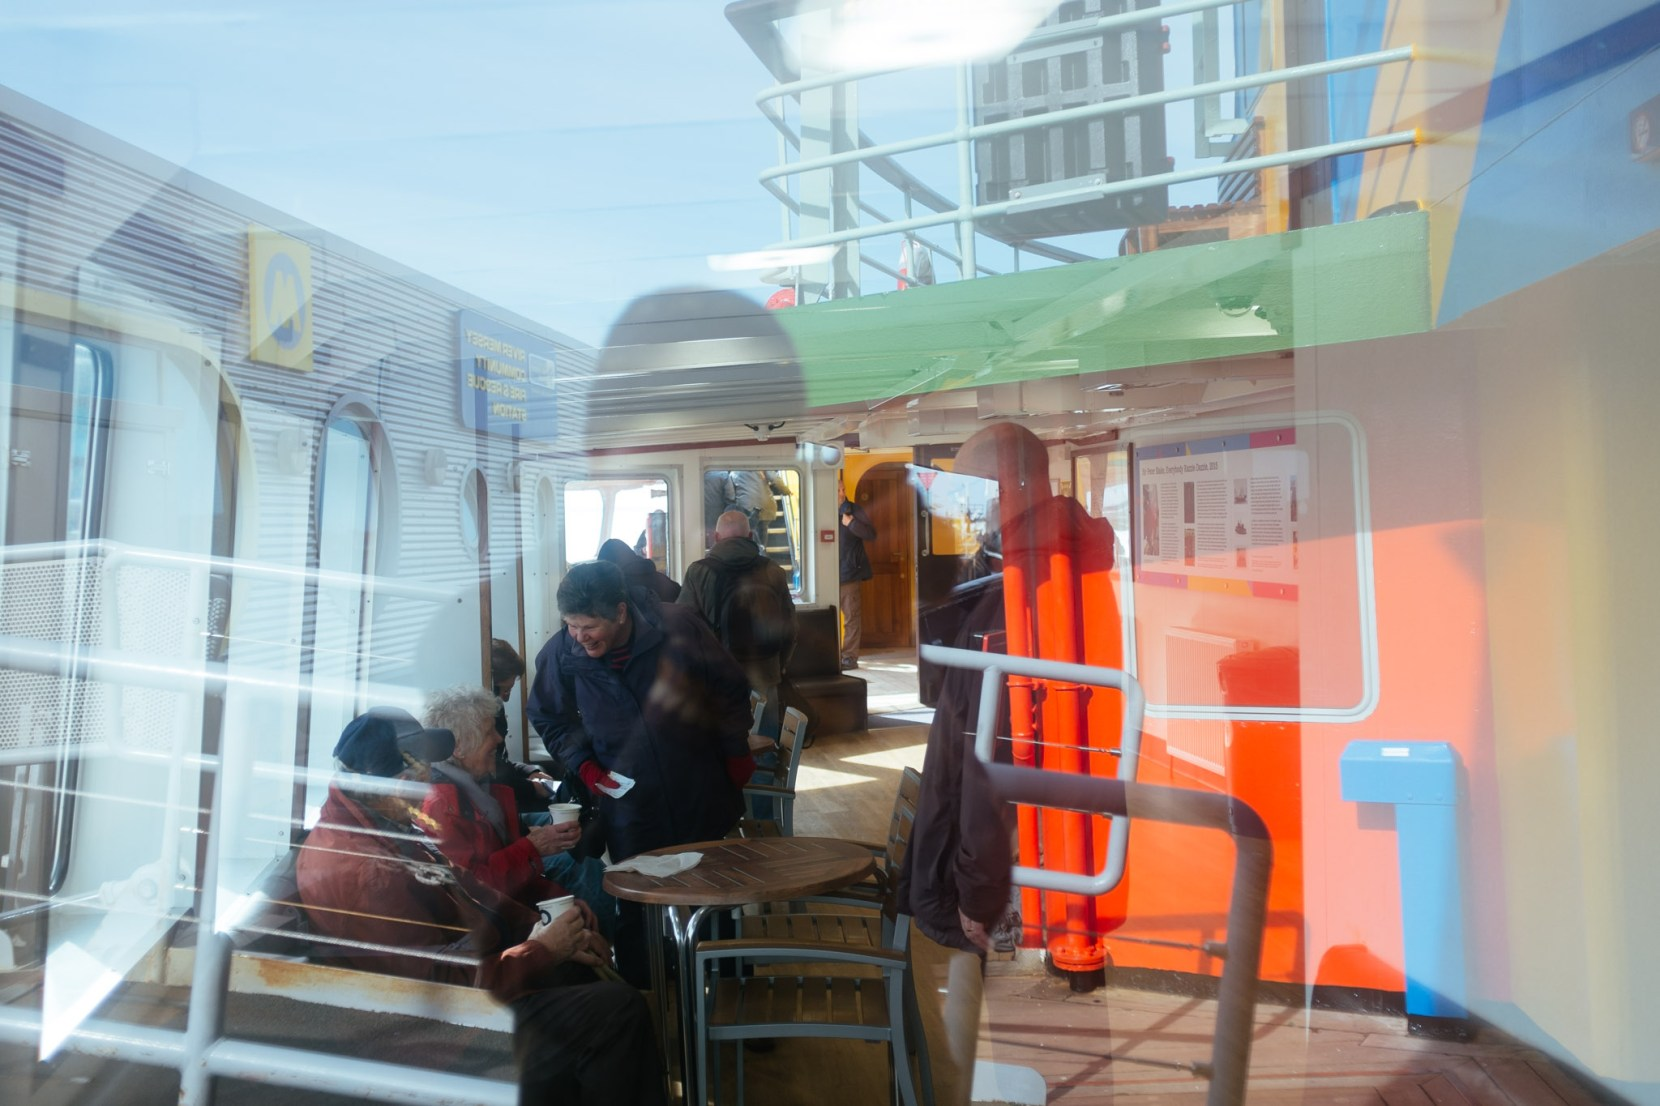 dazzle-ferry-liverpool-6316